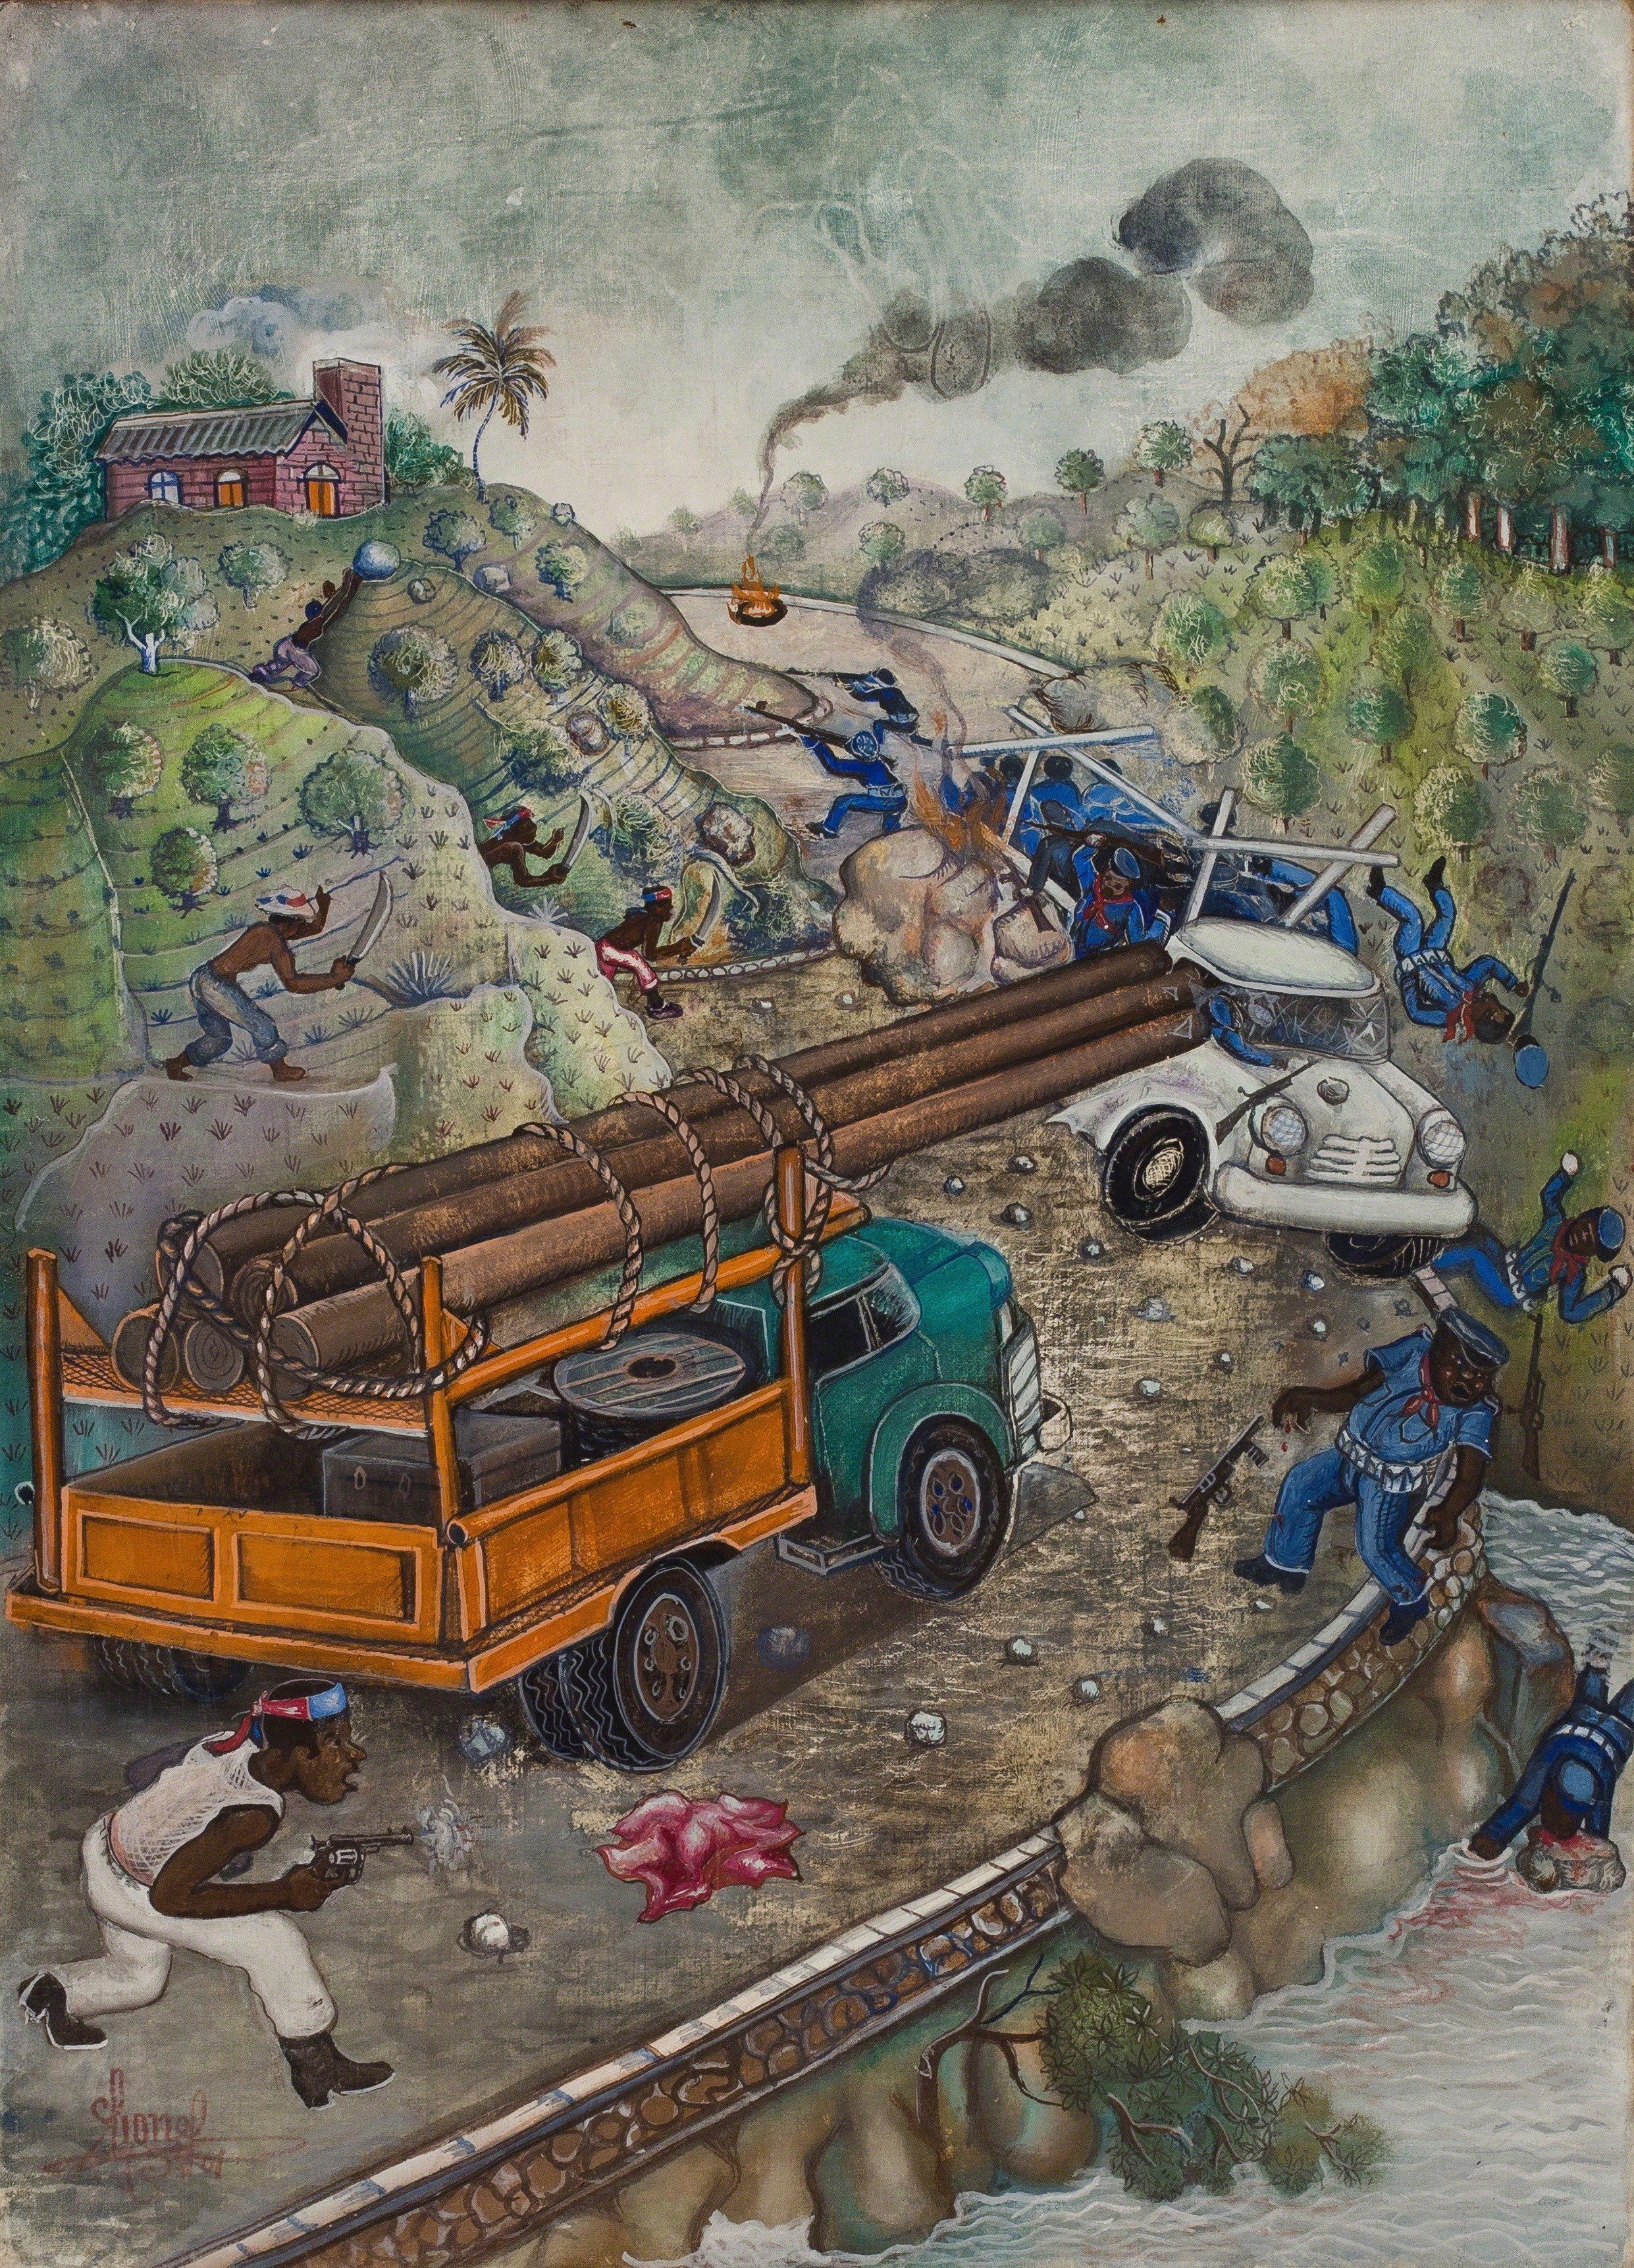 The People Ambush Duvalier Forces, 1986